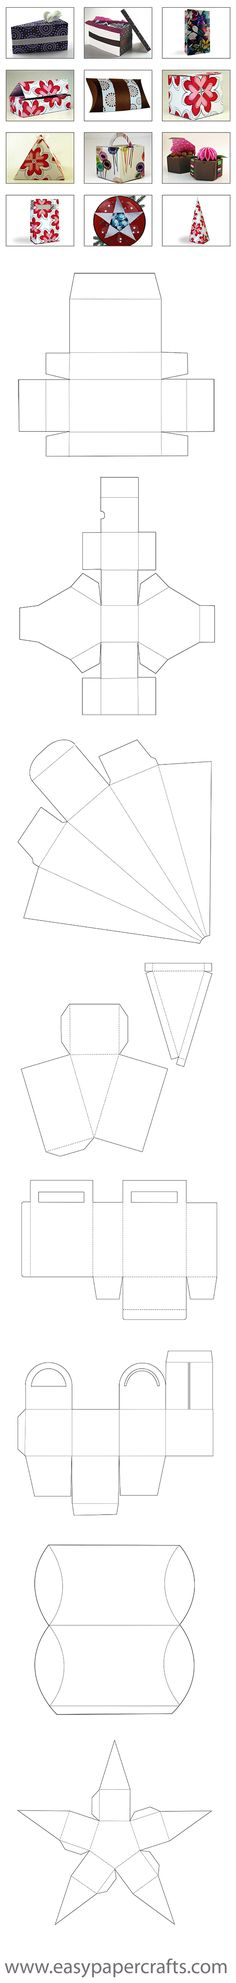 free Box Templates - from Rita at '{easy} Paper Crafts' http://www.easypapercrafts.com/index.php/free-templates-slide-show.html